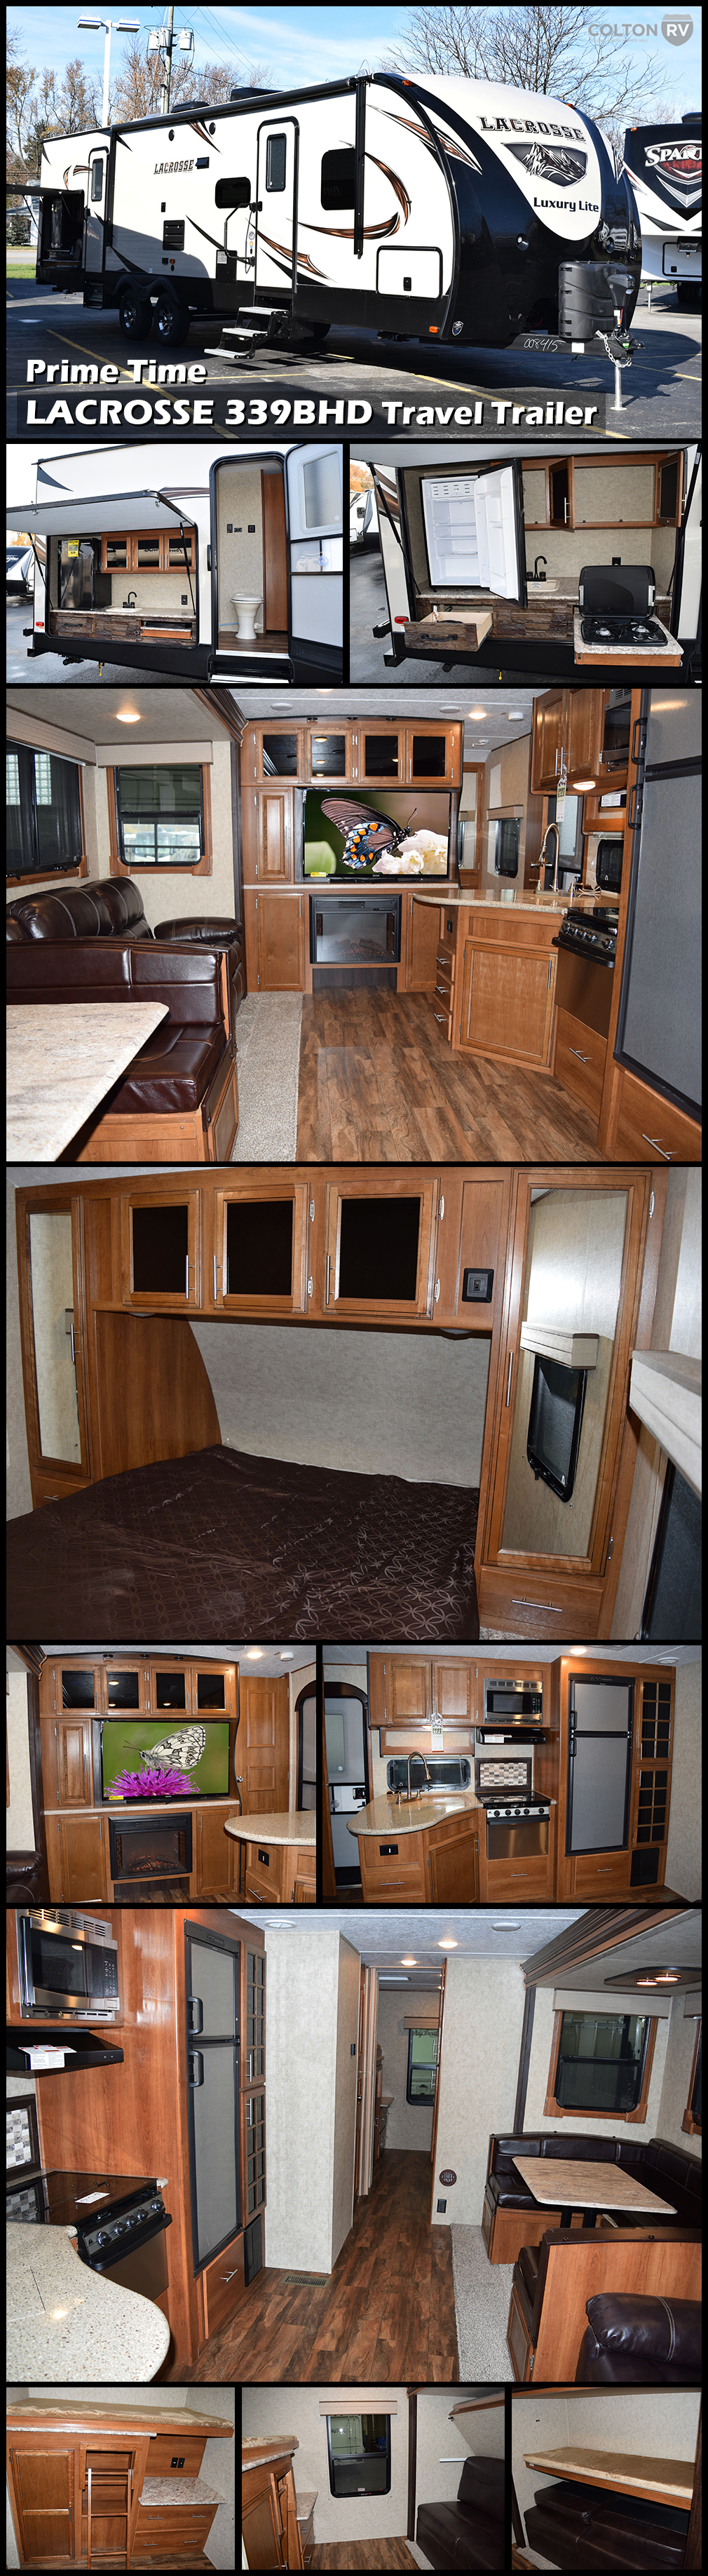 2017 Prime Time Lacrosse 339bhd Travel Trailer As Soon As You Enter This Trailer You Will Notice The Attention Rv Living Motorhomes For Sale Grand Design Rv